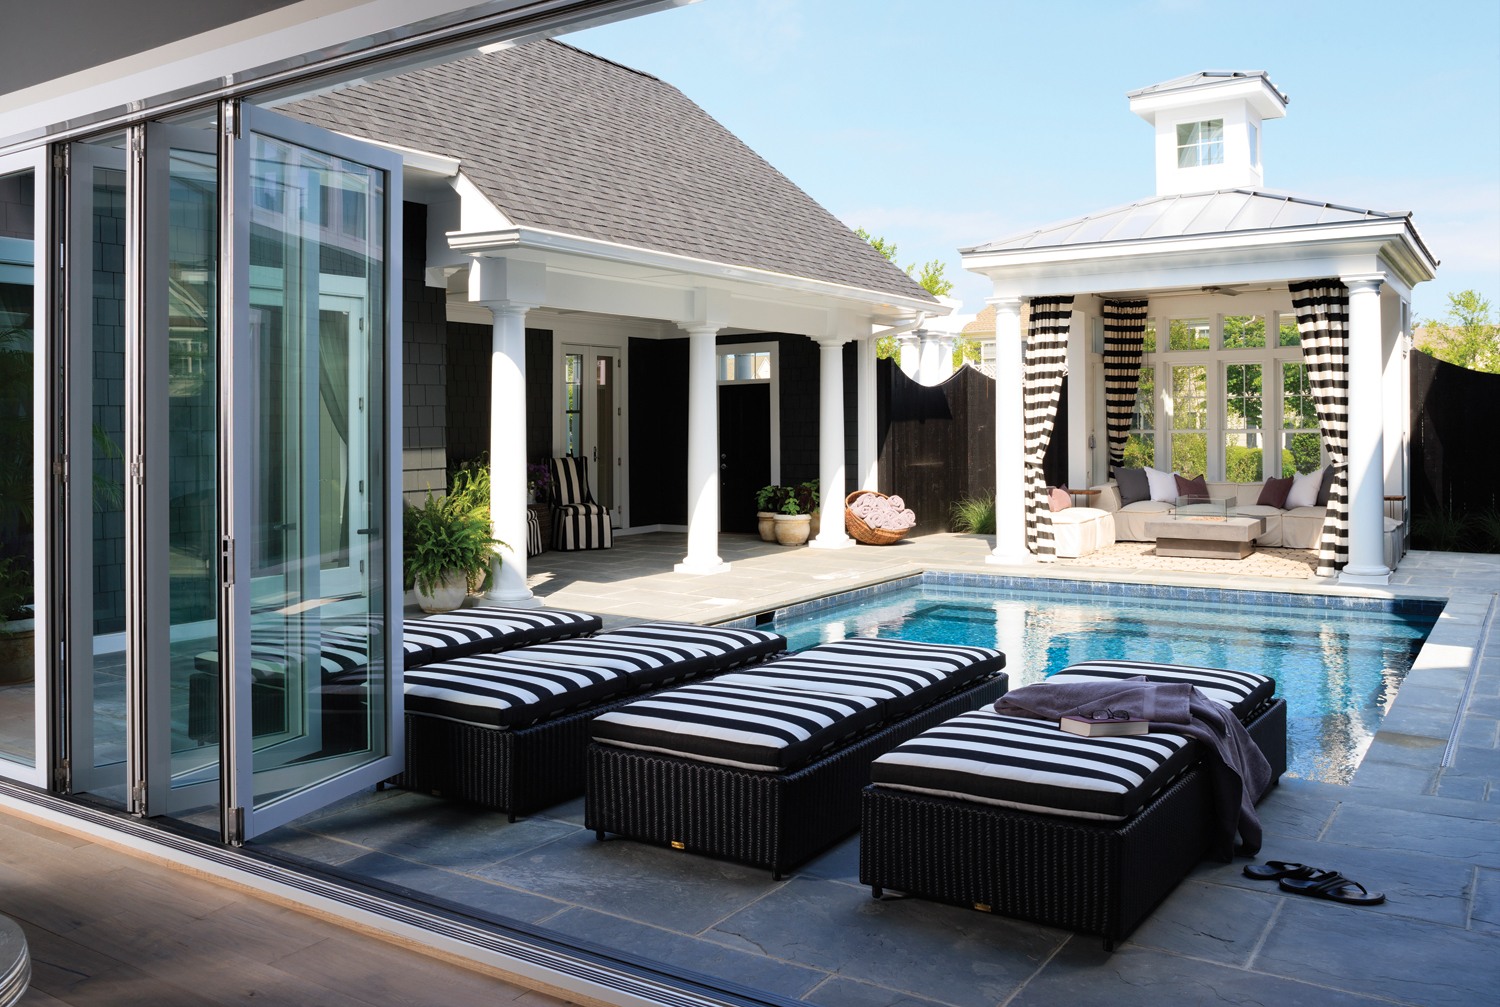 The Pool Is Flanked By A Gazebo While The Front Door Is Sheltered Under A